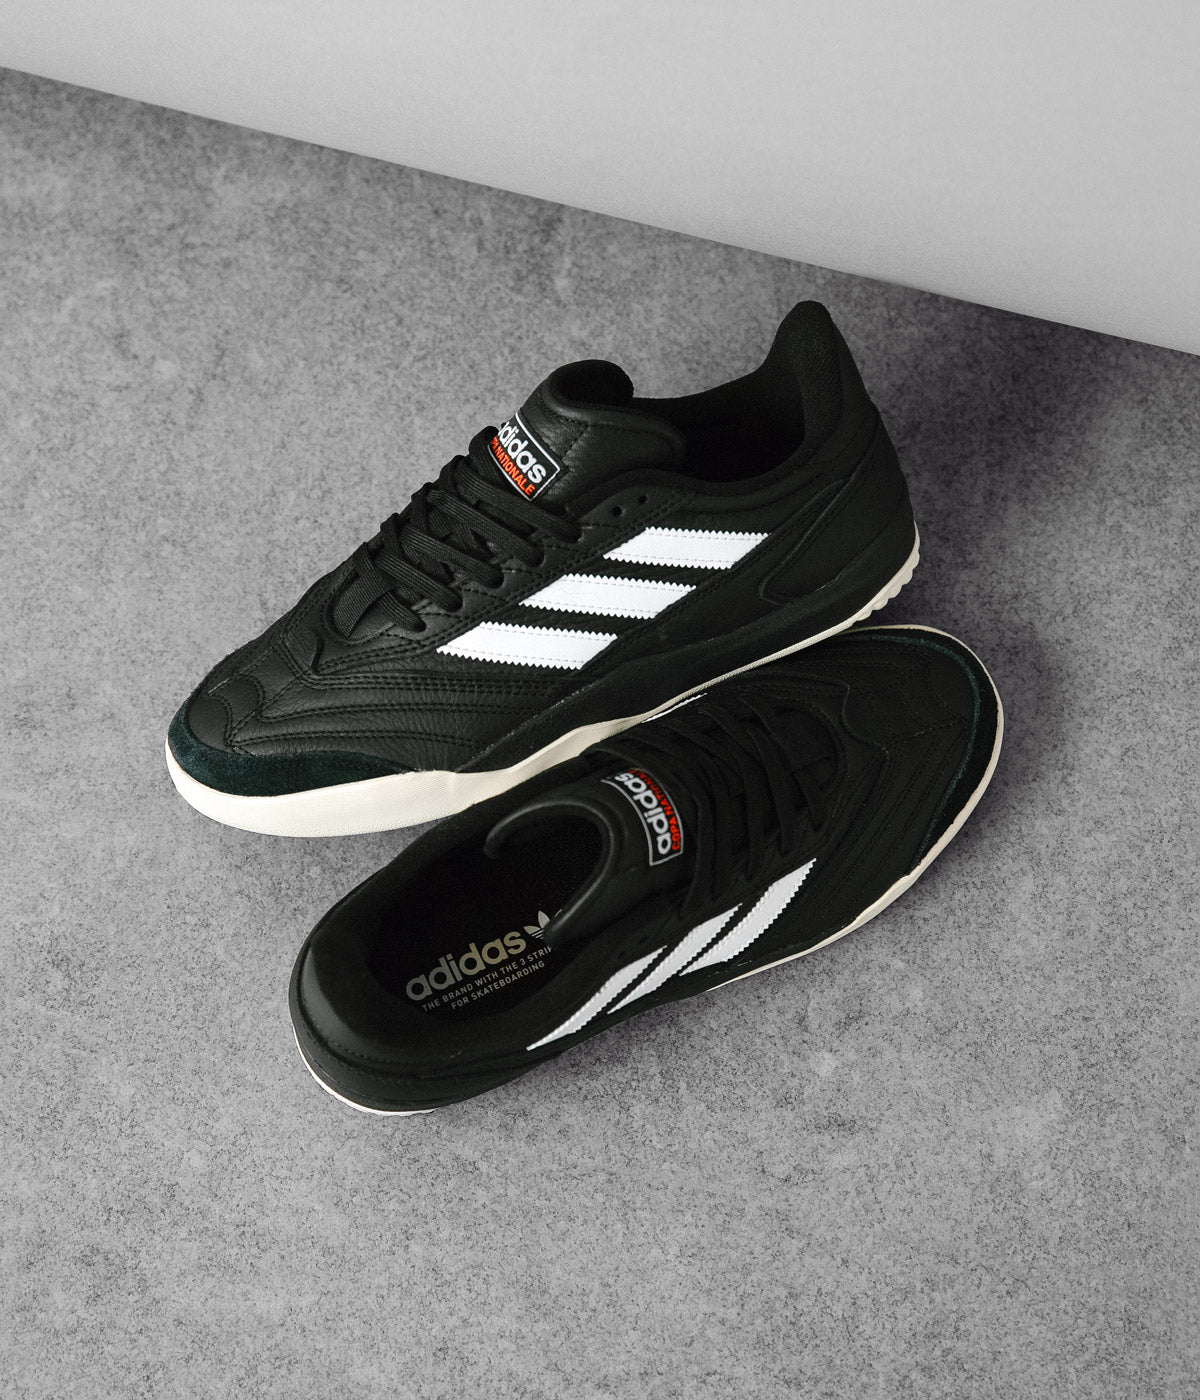 Adidas Copa Nationale Shoes - adidas swimming goggles size chart